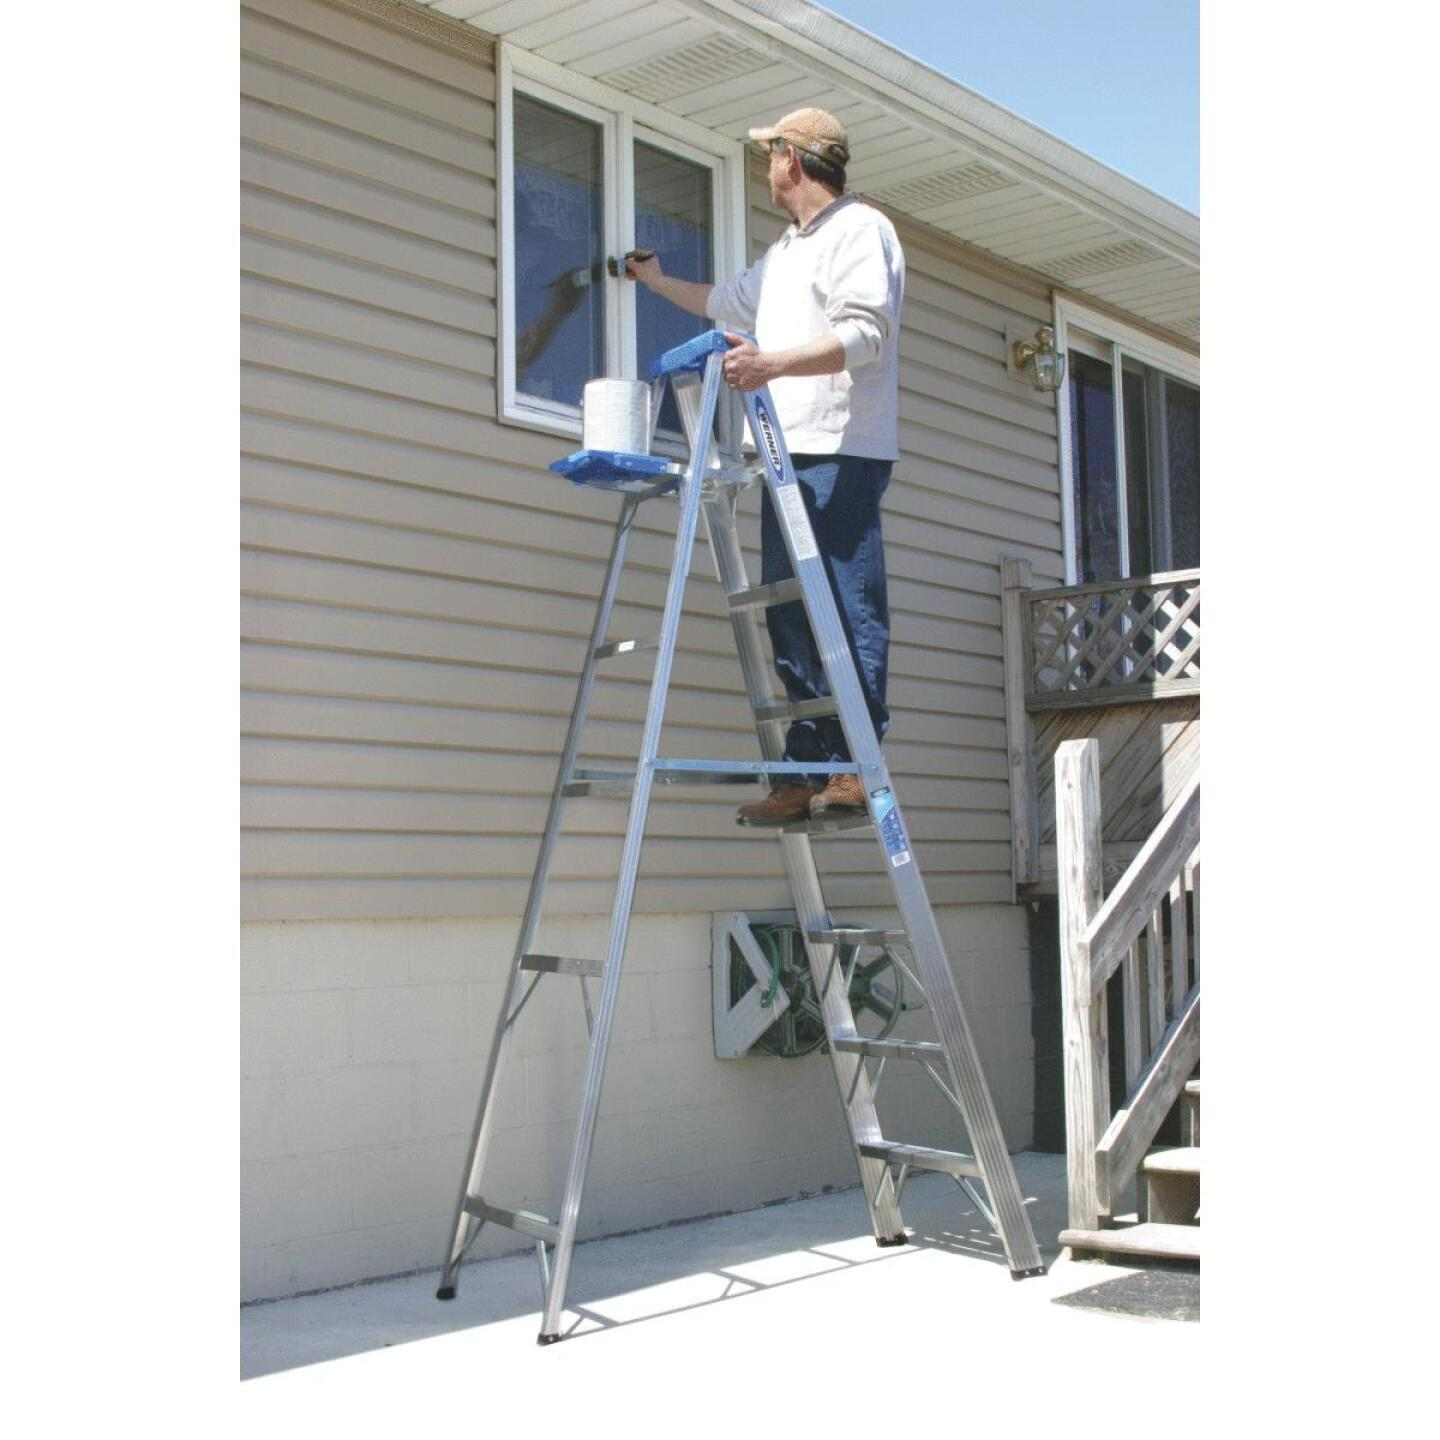 Werner 8 Ft. Aluminum Step Ladder with 250 Lb. Load Capacity Type I Ladder Rating Image 5